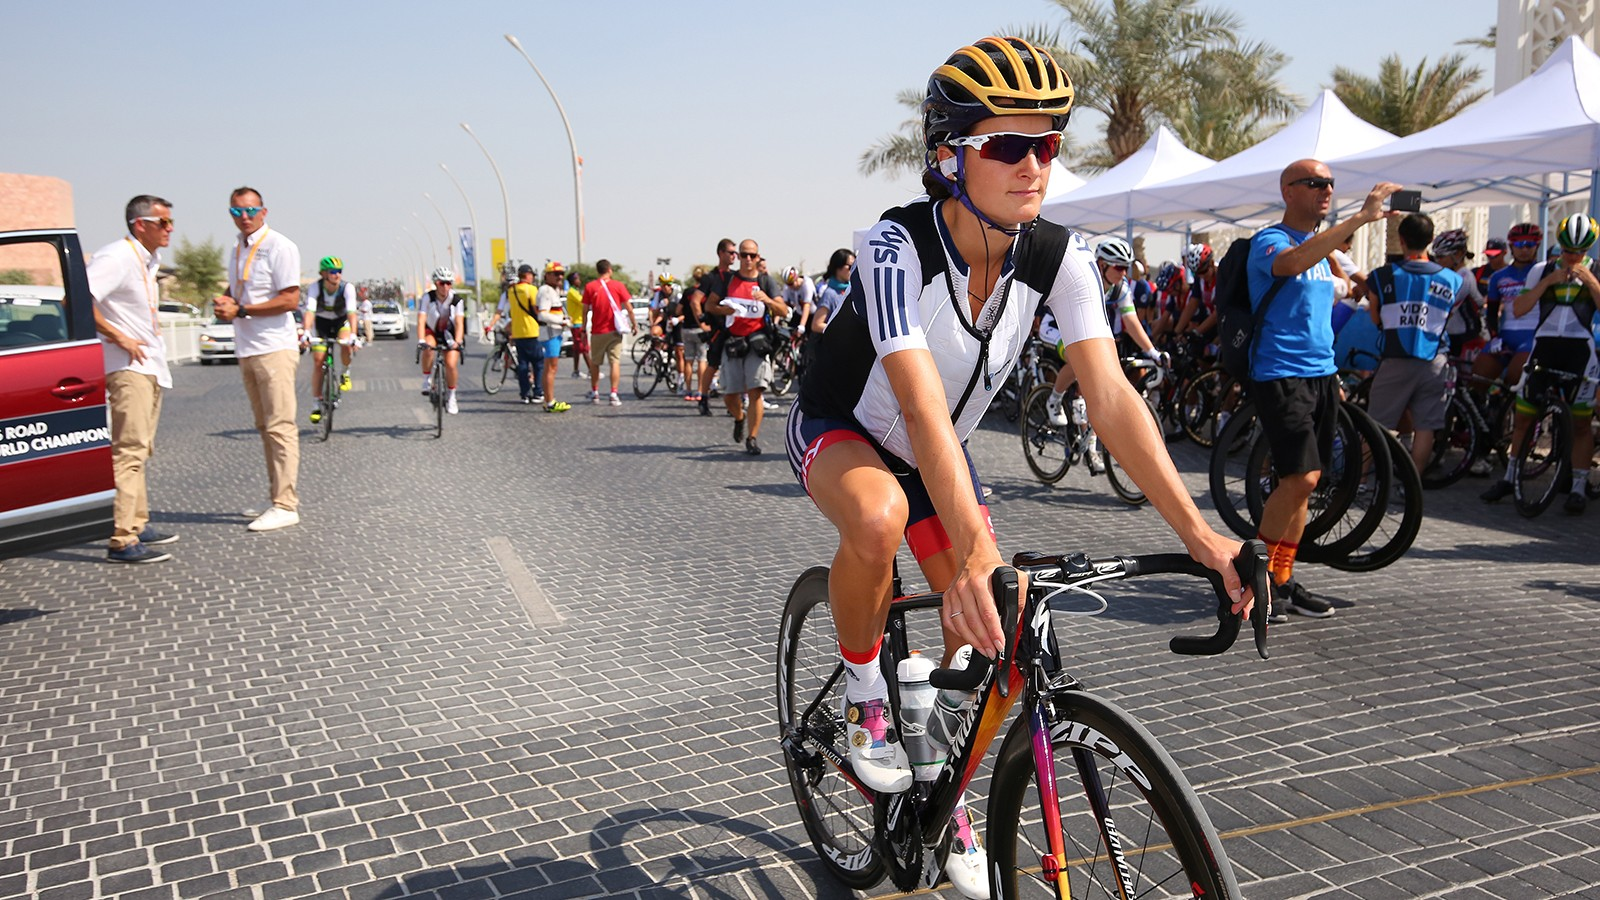 Lizzie Deignan is one of the most successful female professional cyclists racing today